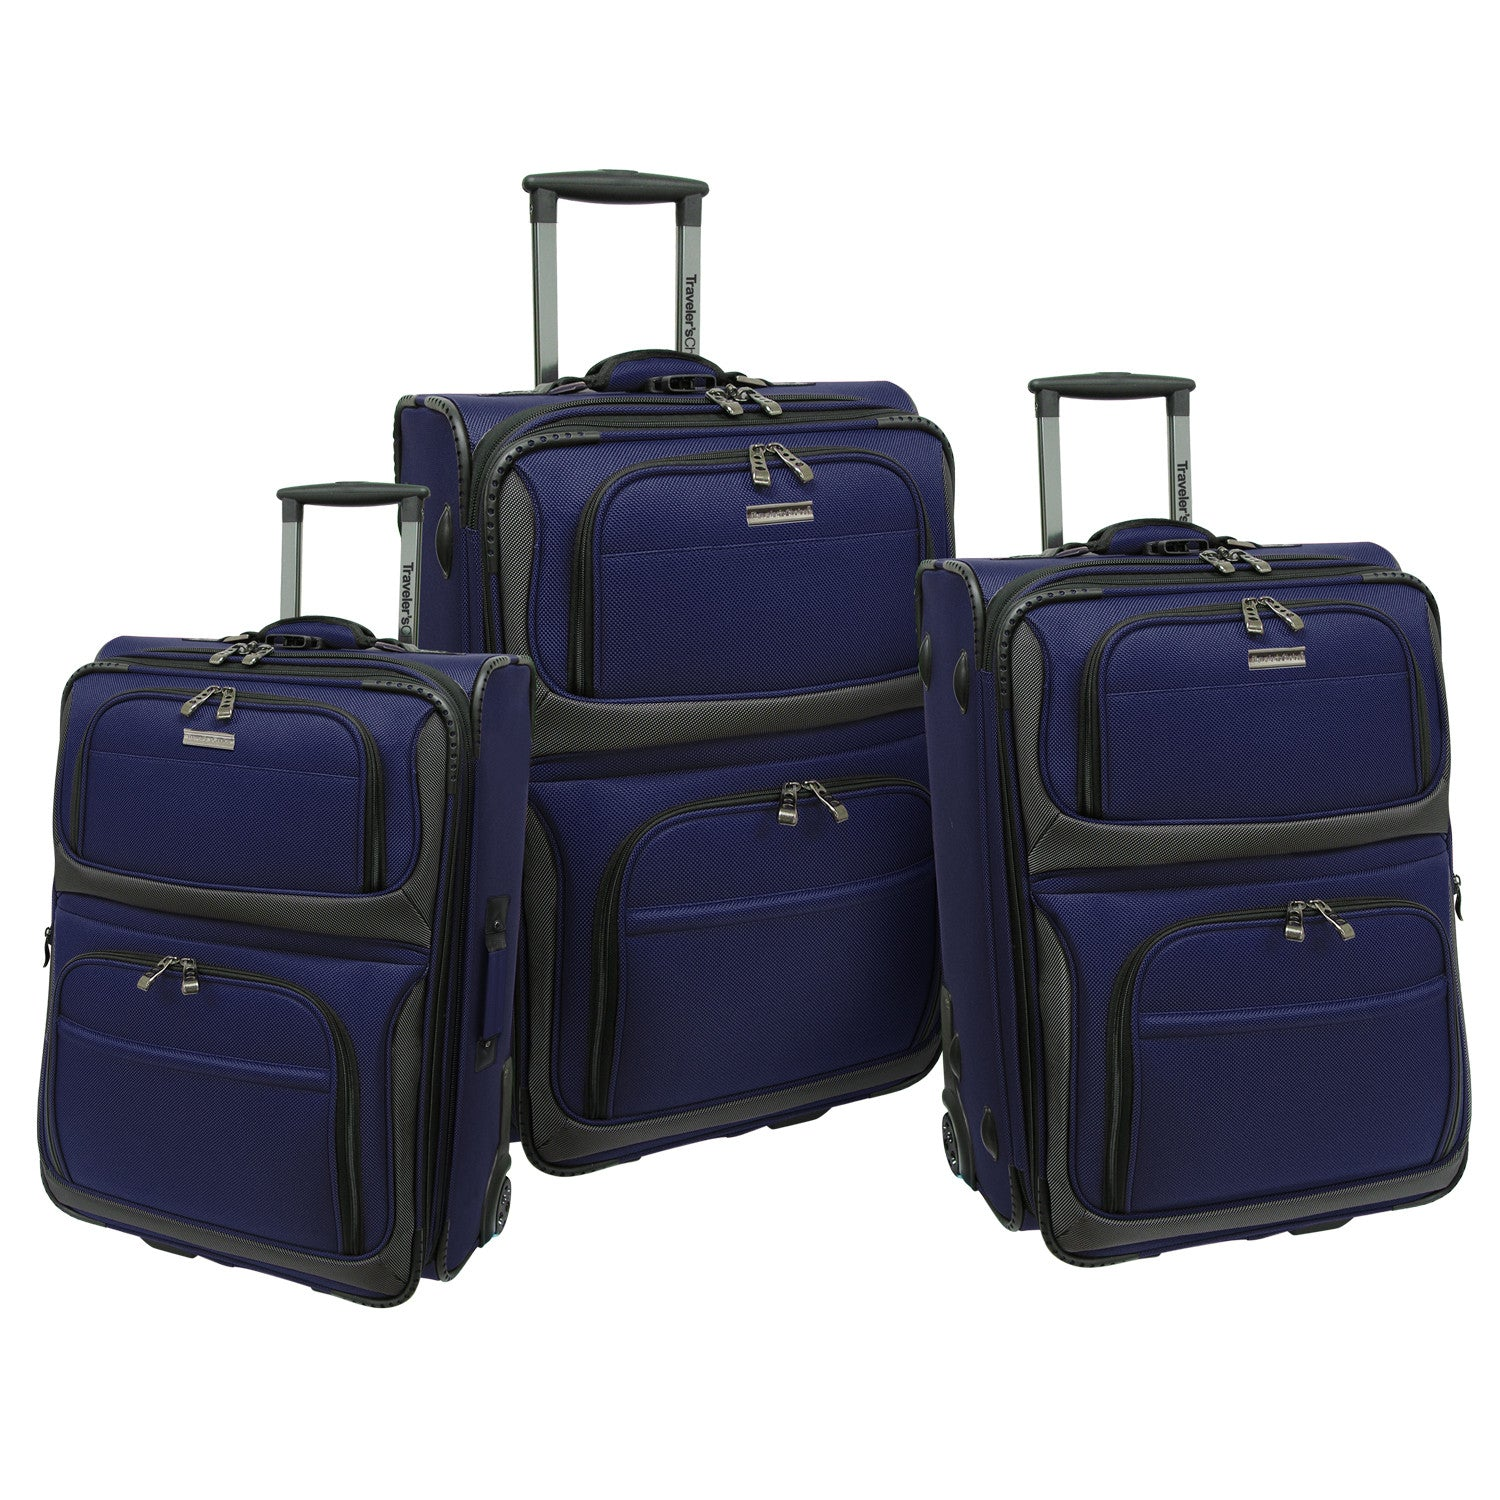 Traveler's Choice Conventional II 3 Piece Luggage Set - Kater Shop